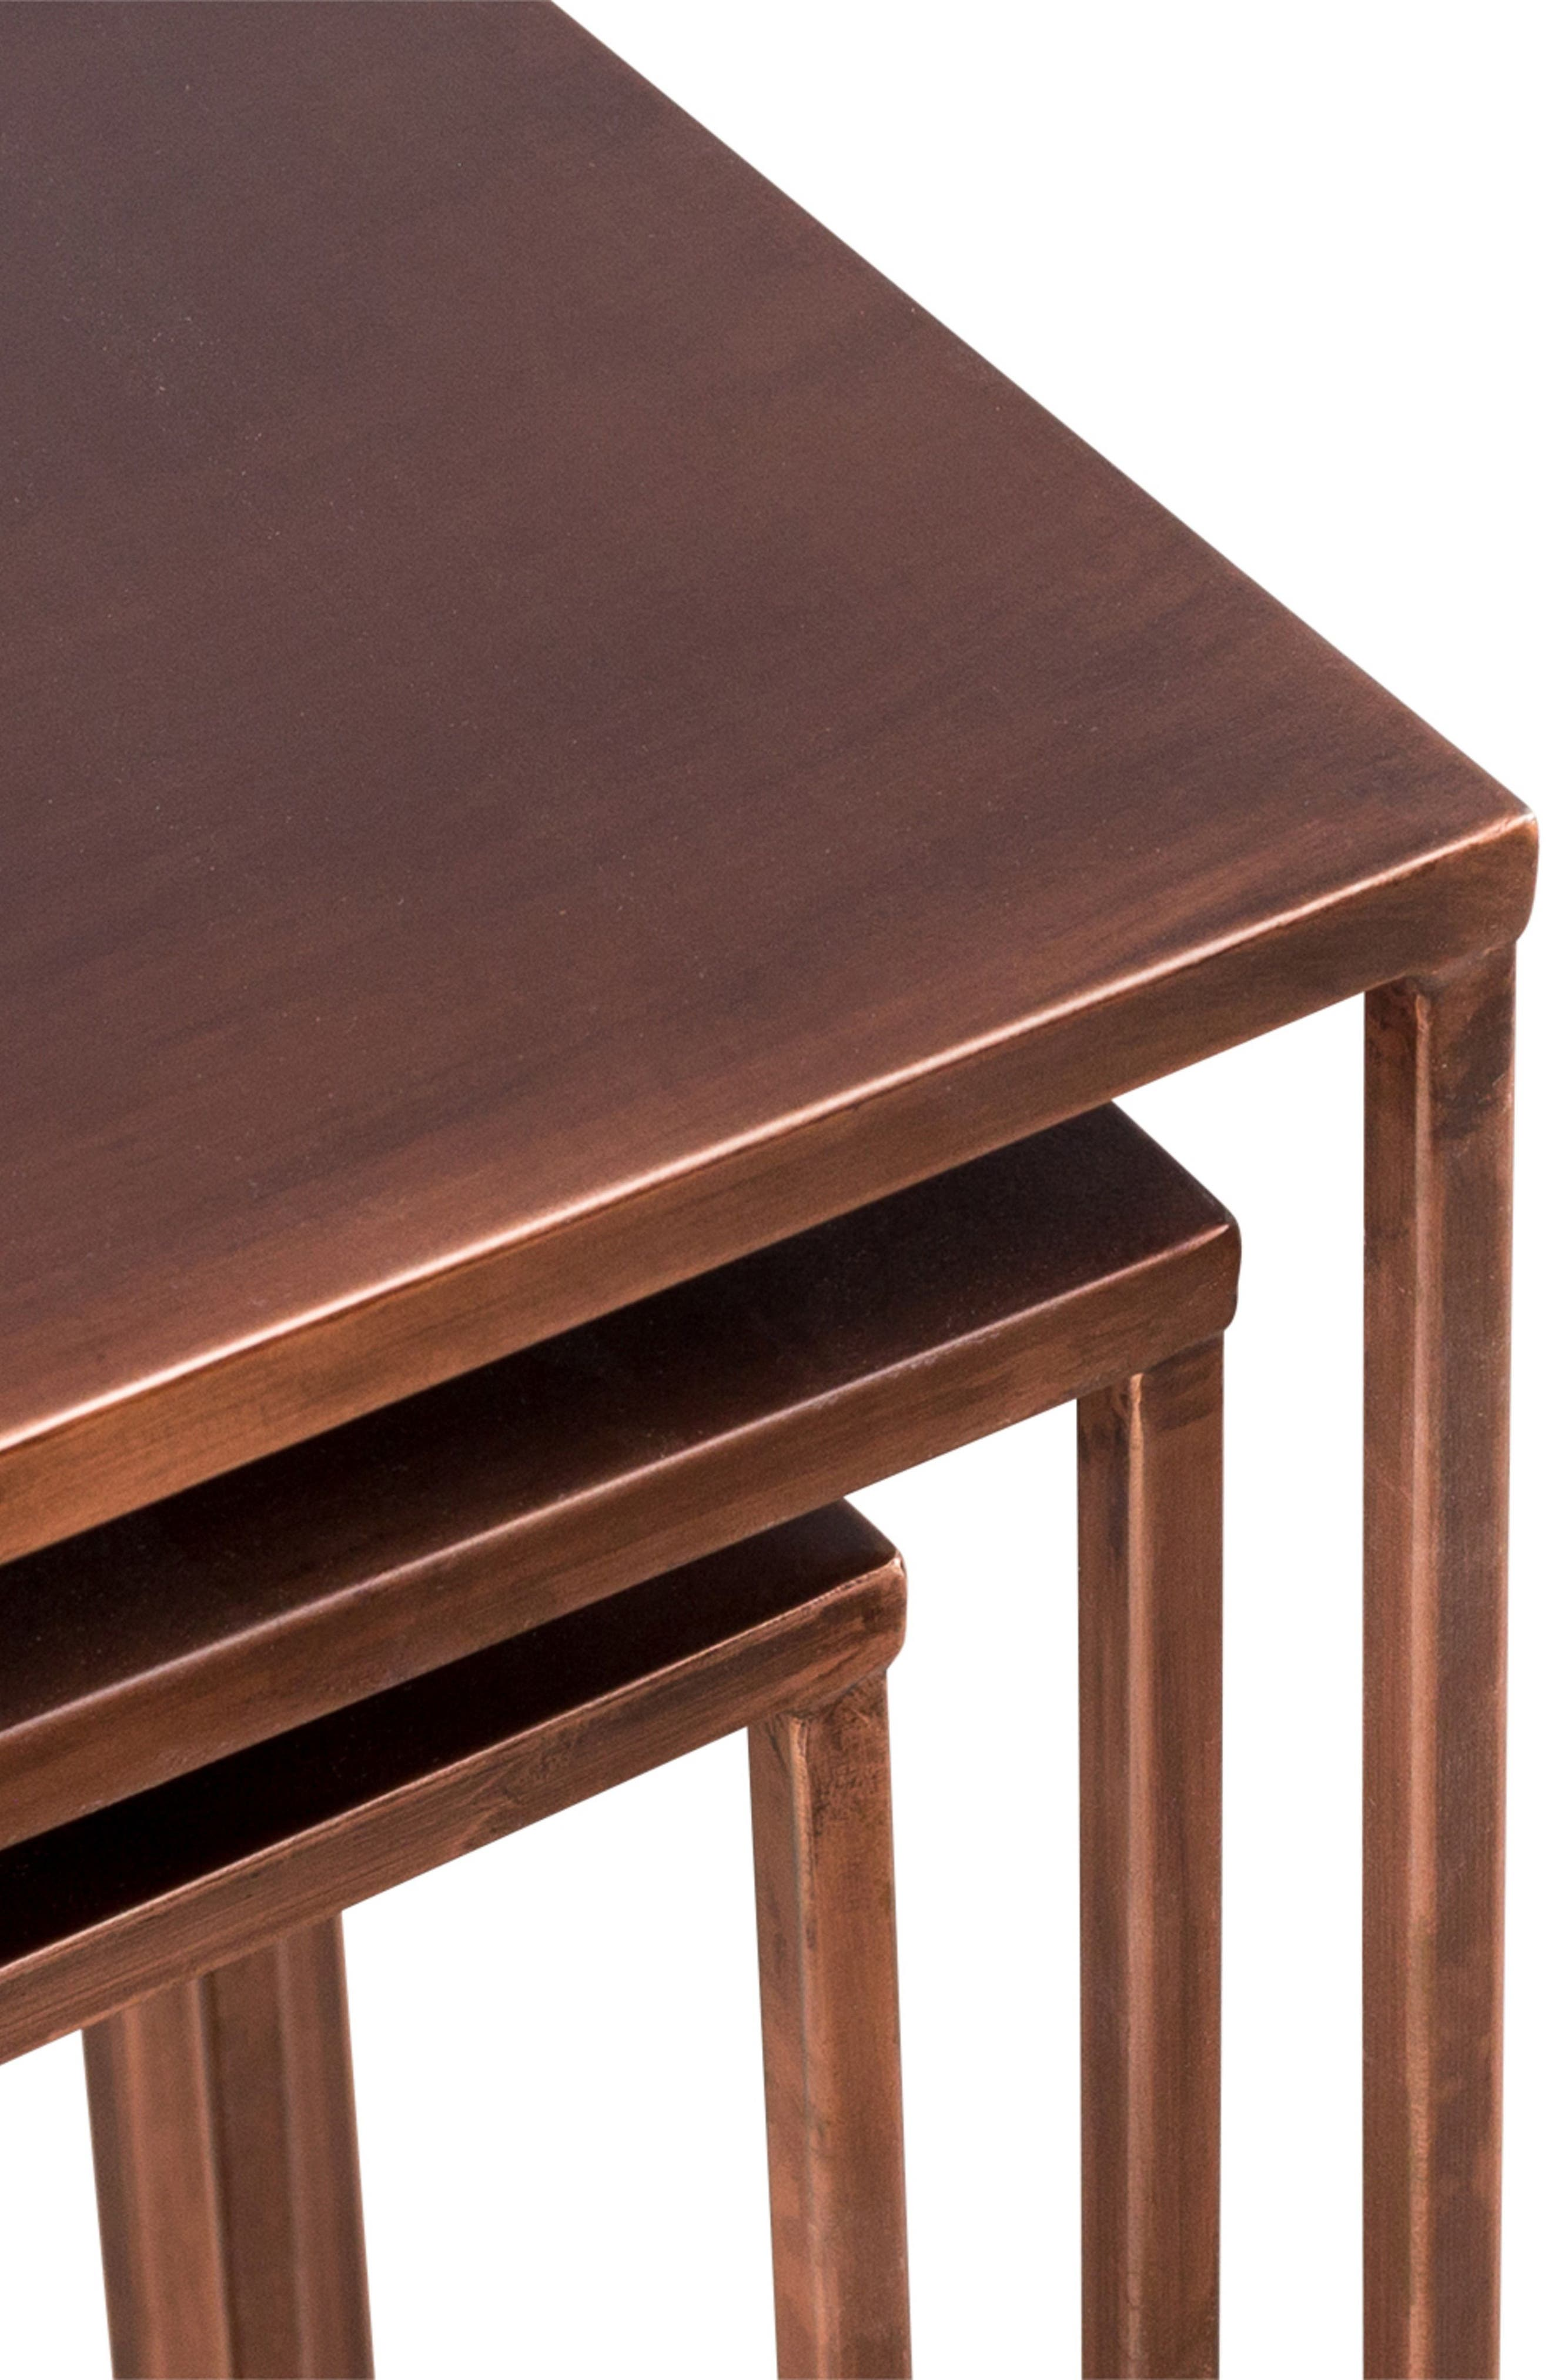 Pollock Set of 3 Tall Nesting Tables,                             Alternate thumbnail 2, color,                             COPPER